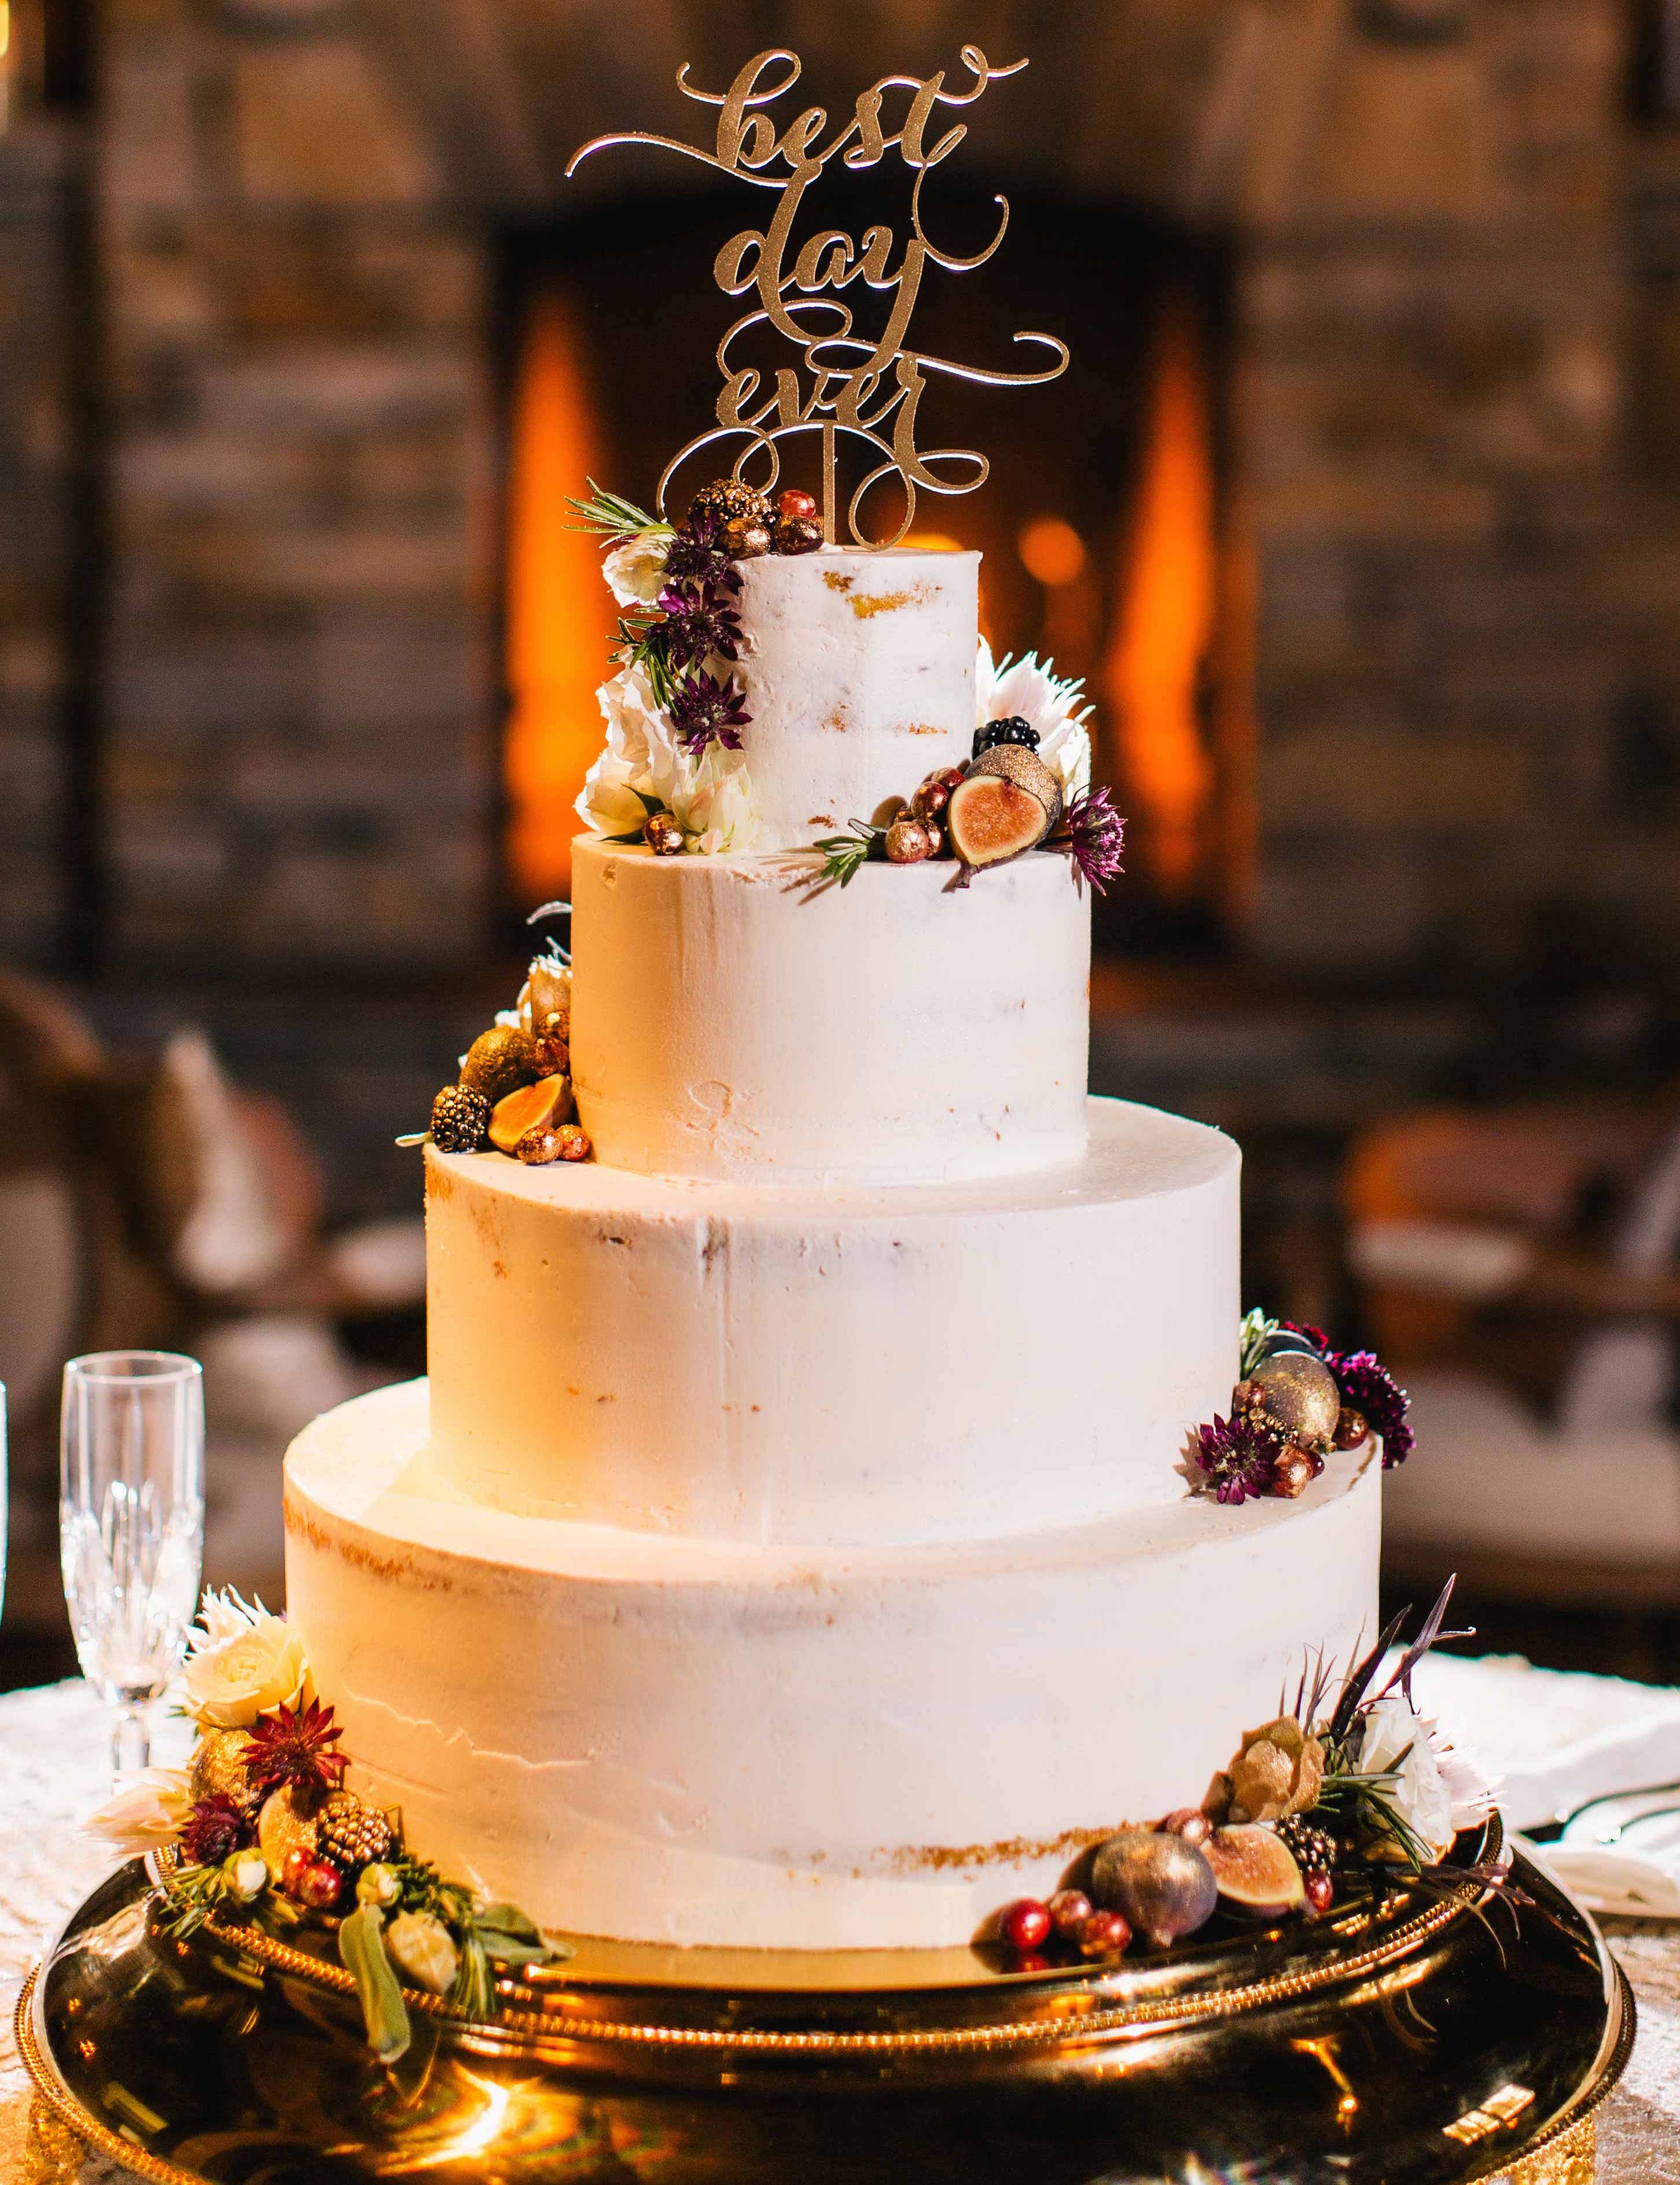 White wedding cake for fall wedding with best day ever cake topper and figs